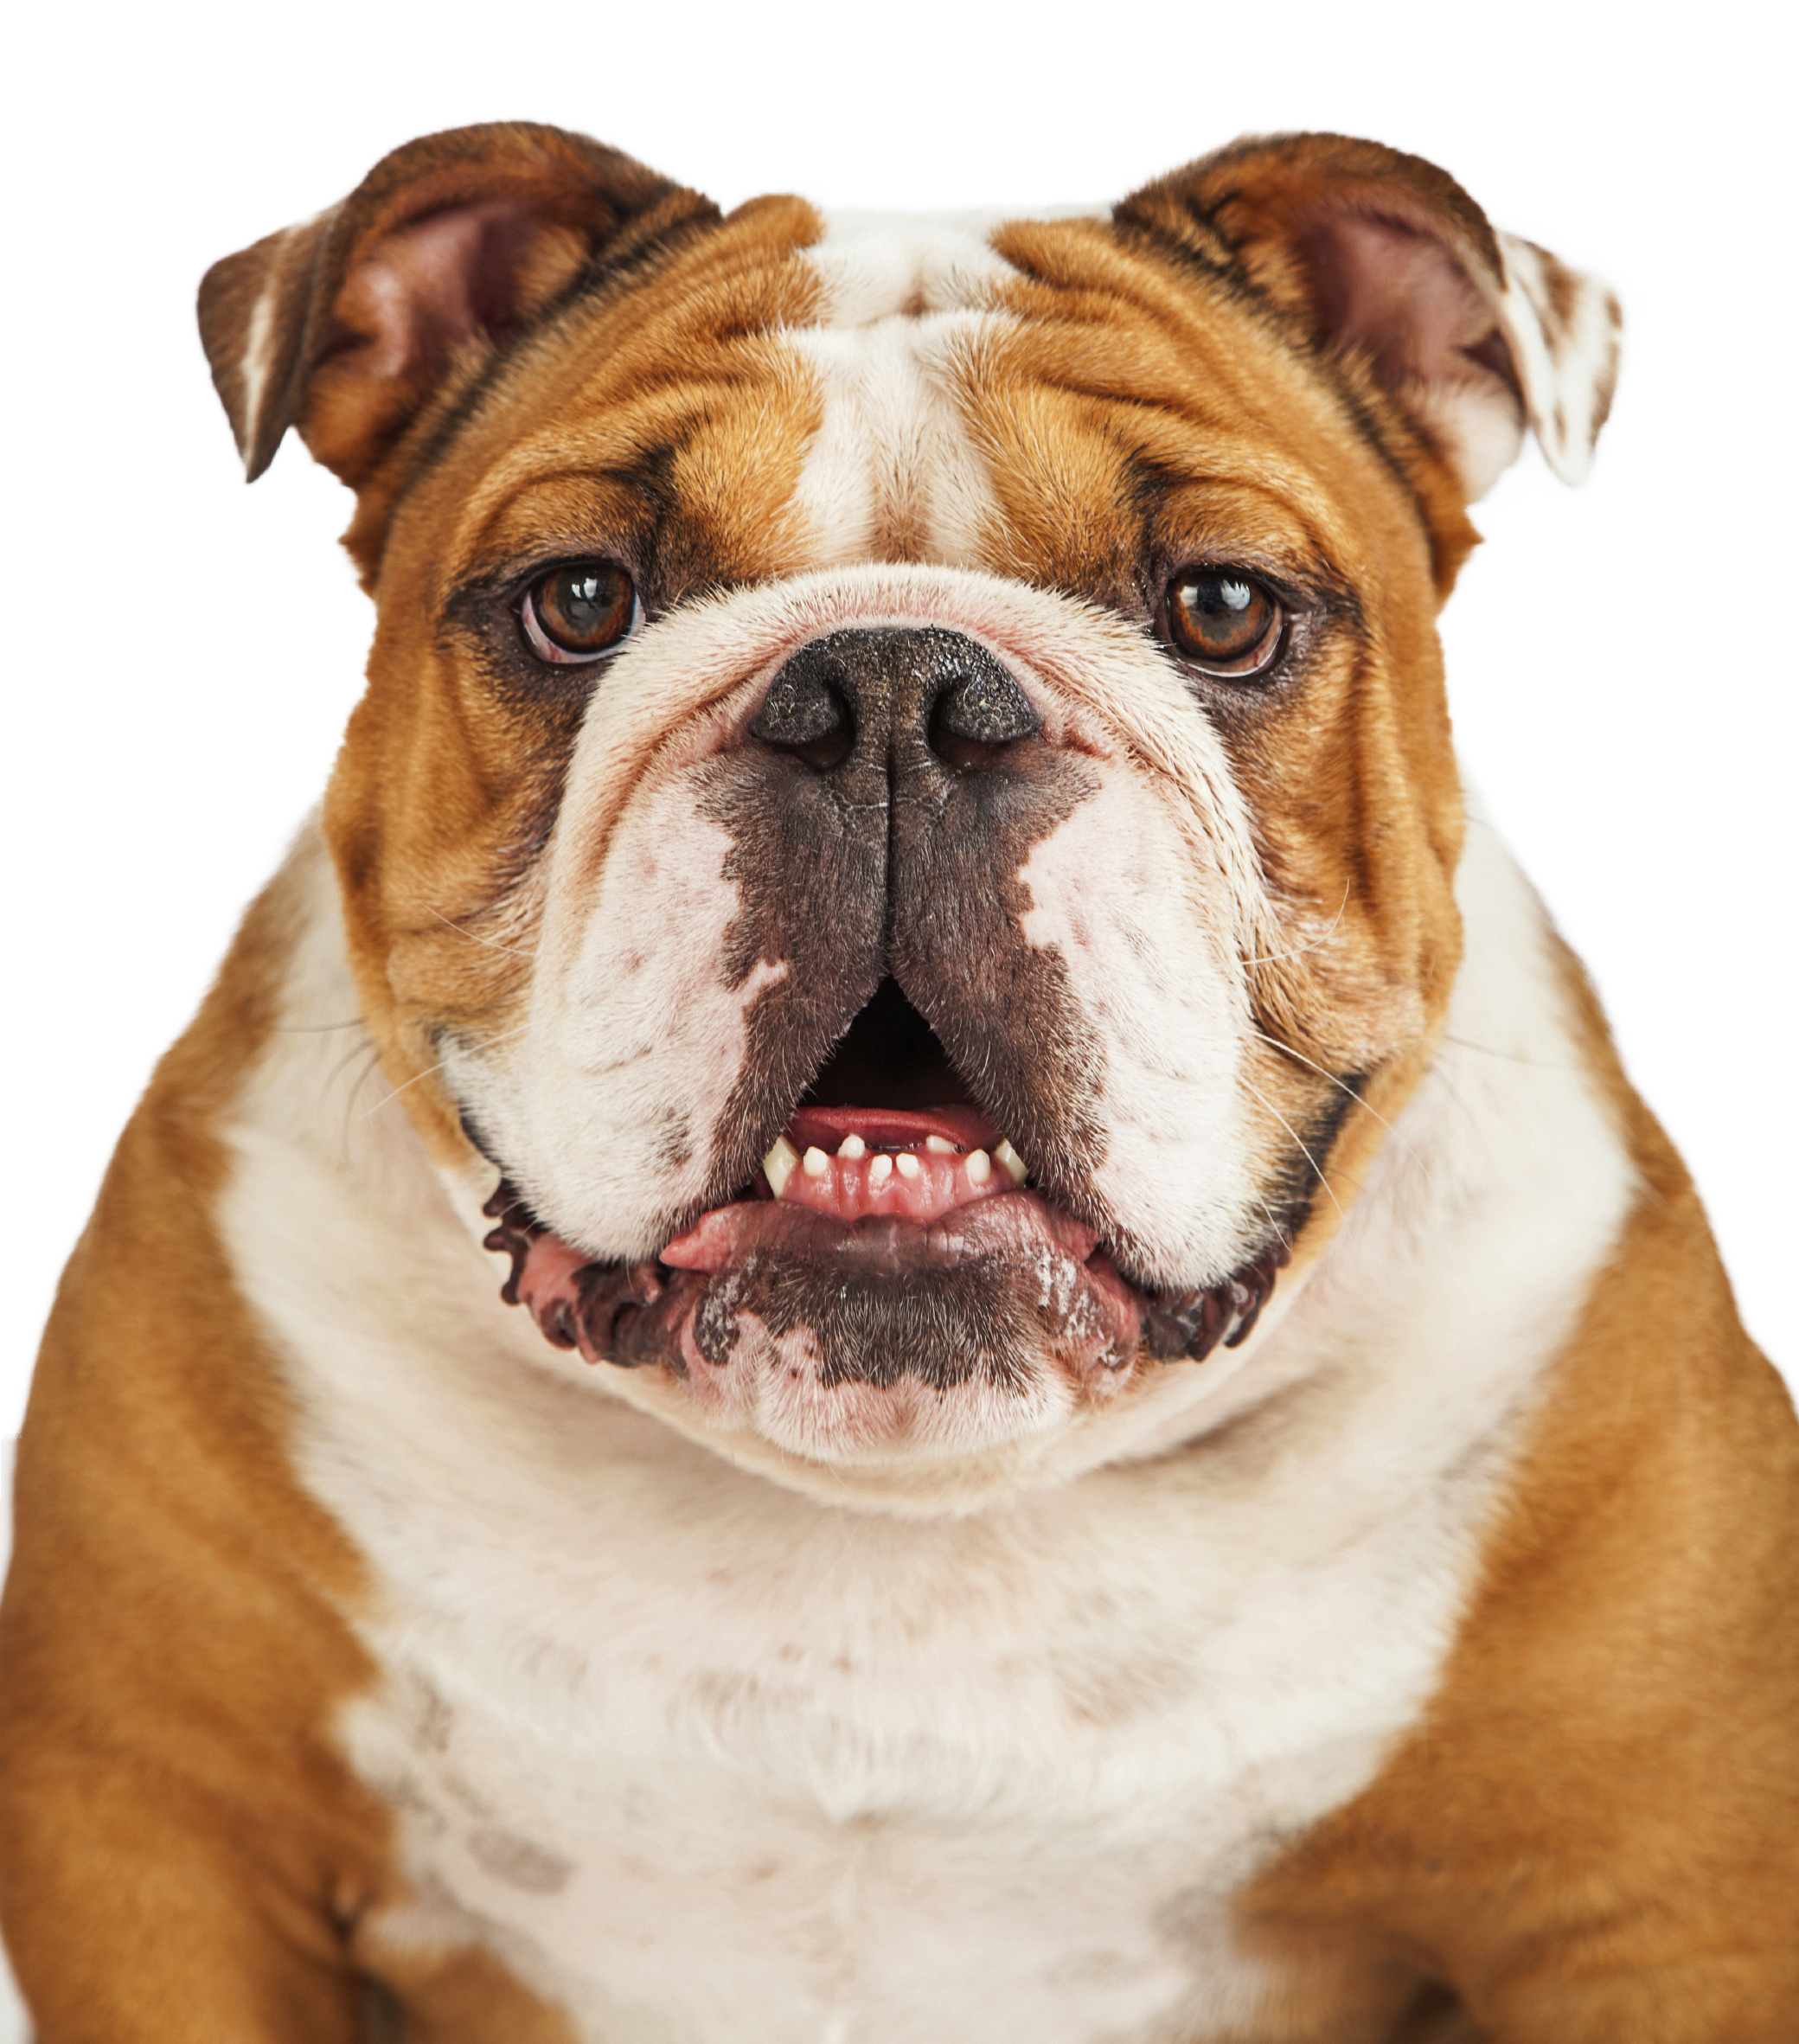 Most Popular Dog Breeds In The